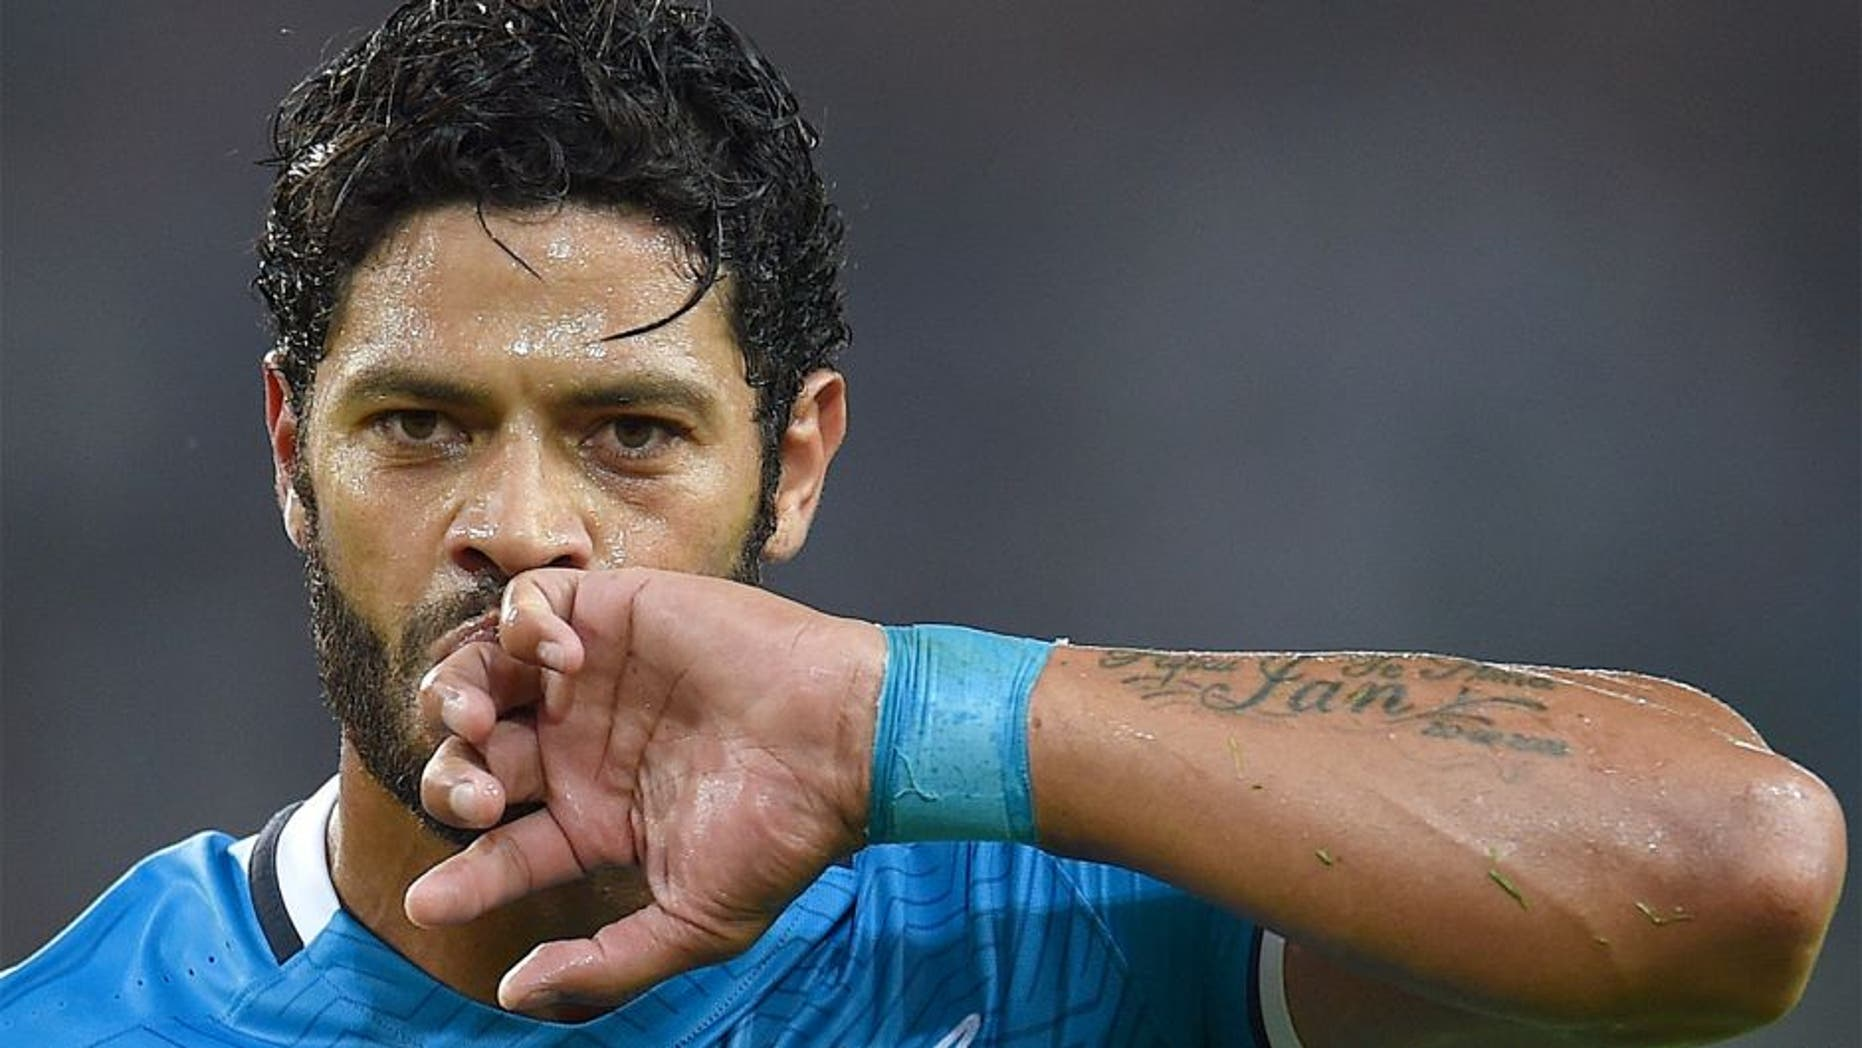 MOSCOW, RUSSIA - SEPTEMBER 26: Hulk of FC Zenit St. Petersburg celebrates after scoring a goal during the Russian Premier League match between FC Spartak Moscow and FC Zenit St. Petersburg at the Arena Otkritie Stadium on September 26, 2015 in Moscow, Russia. (Photo by Epsilon/Getty Images)